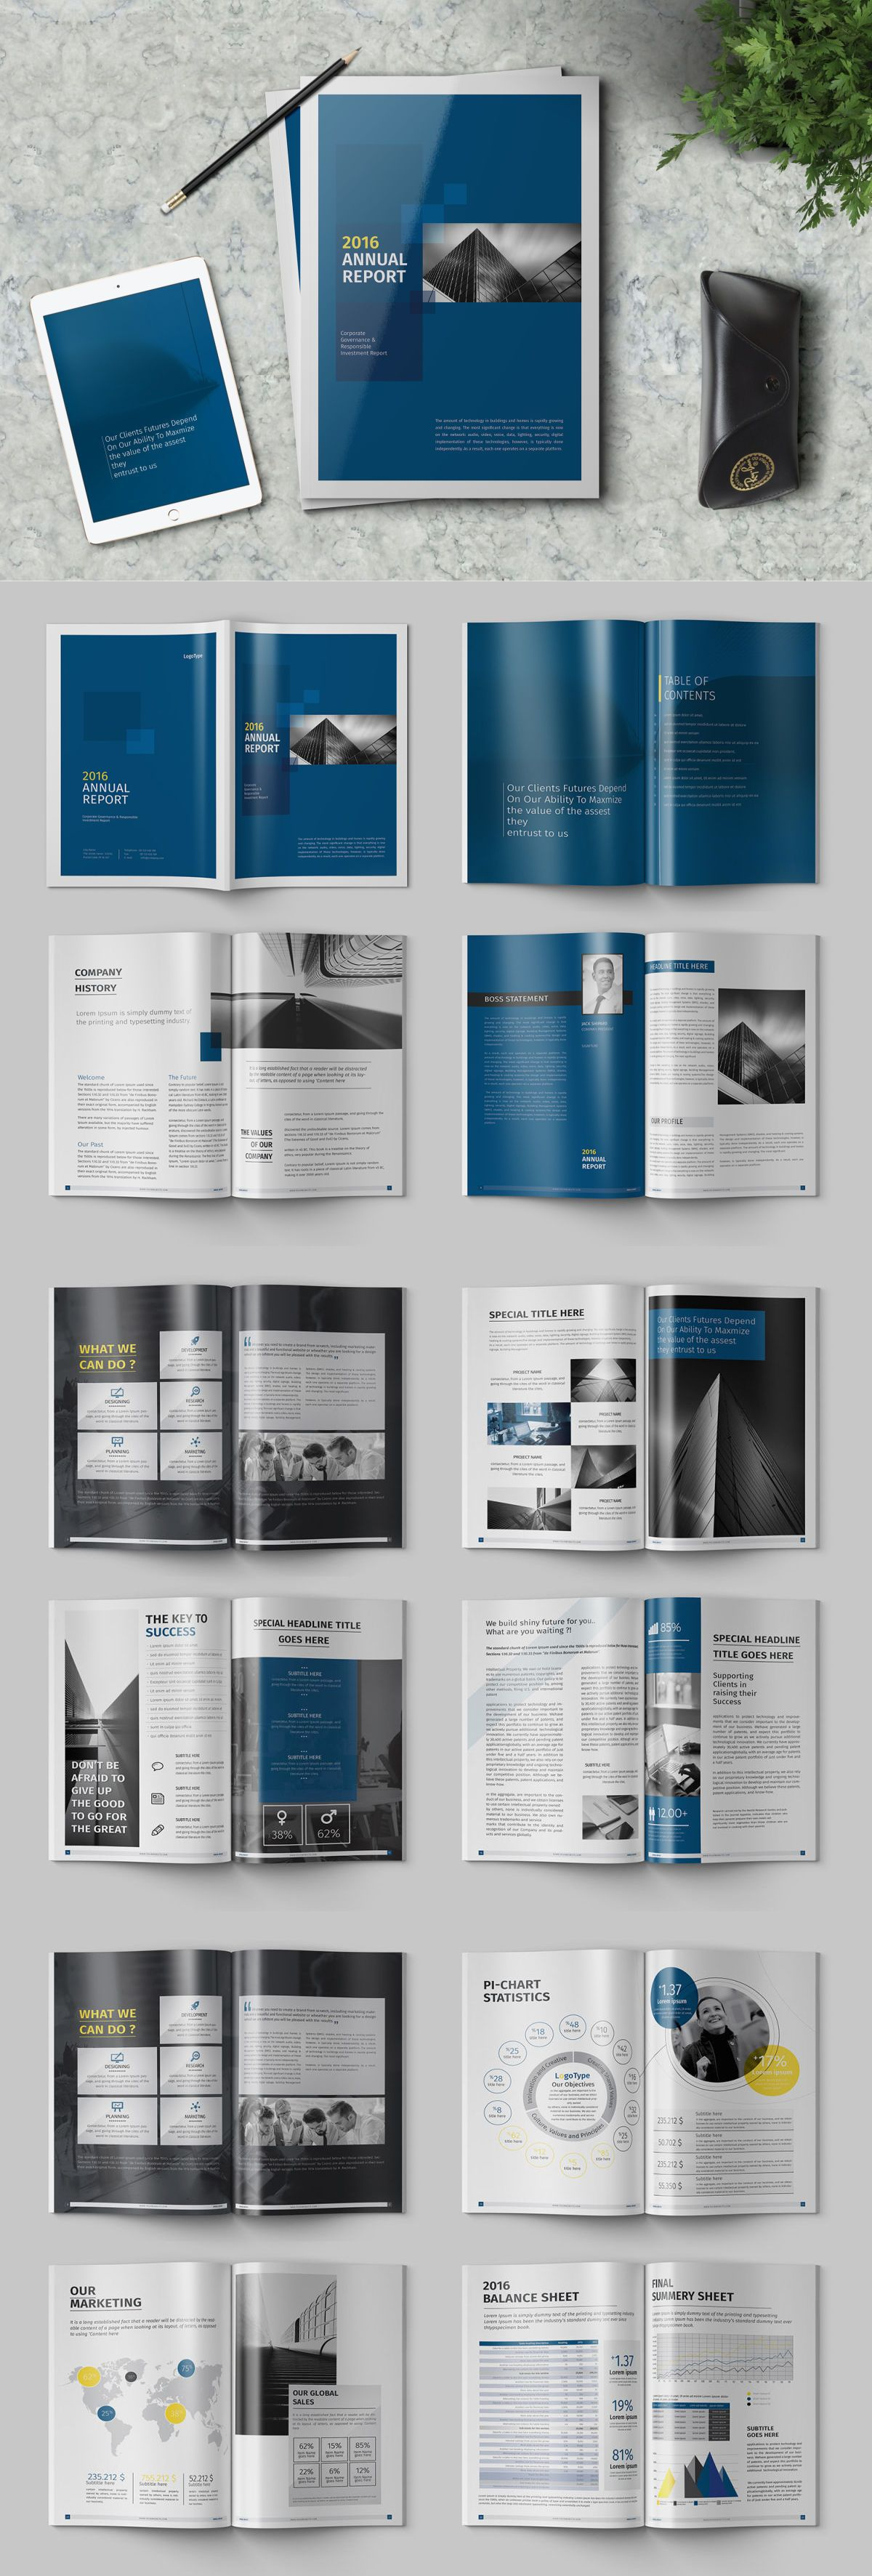 Blue Annual Report Template InDesign INDD | Report | Pinterest ...